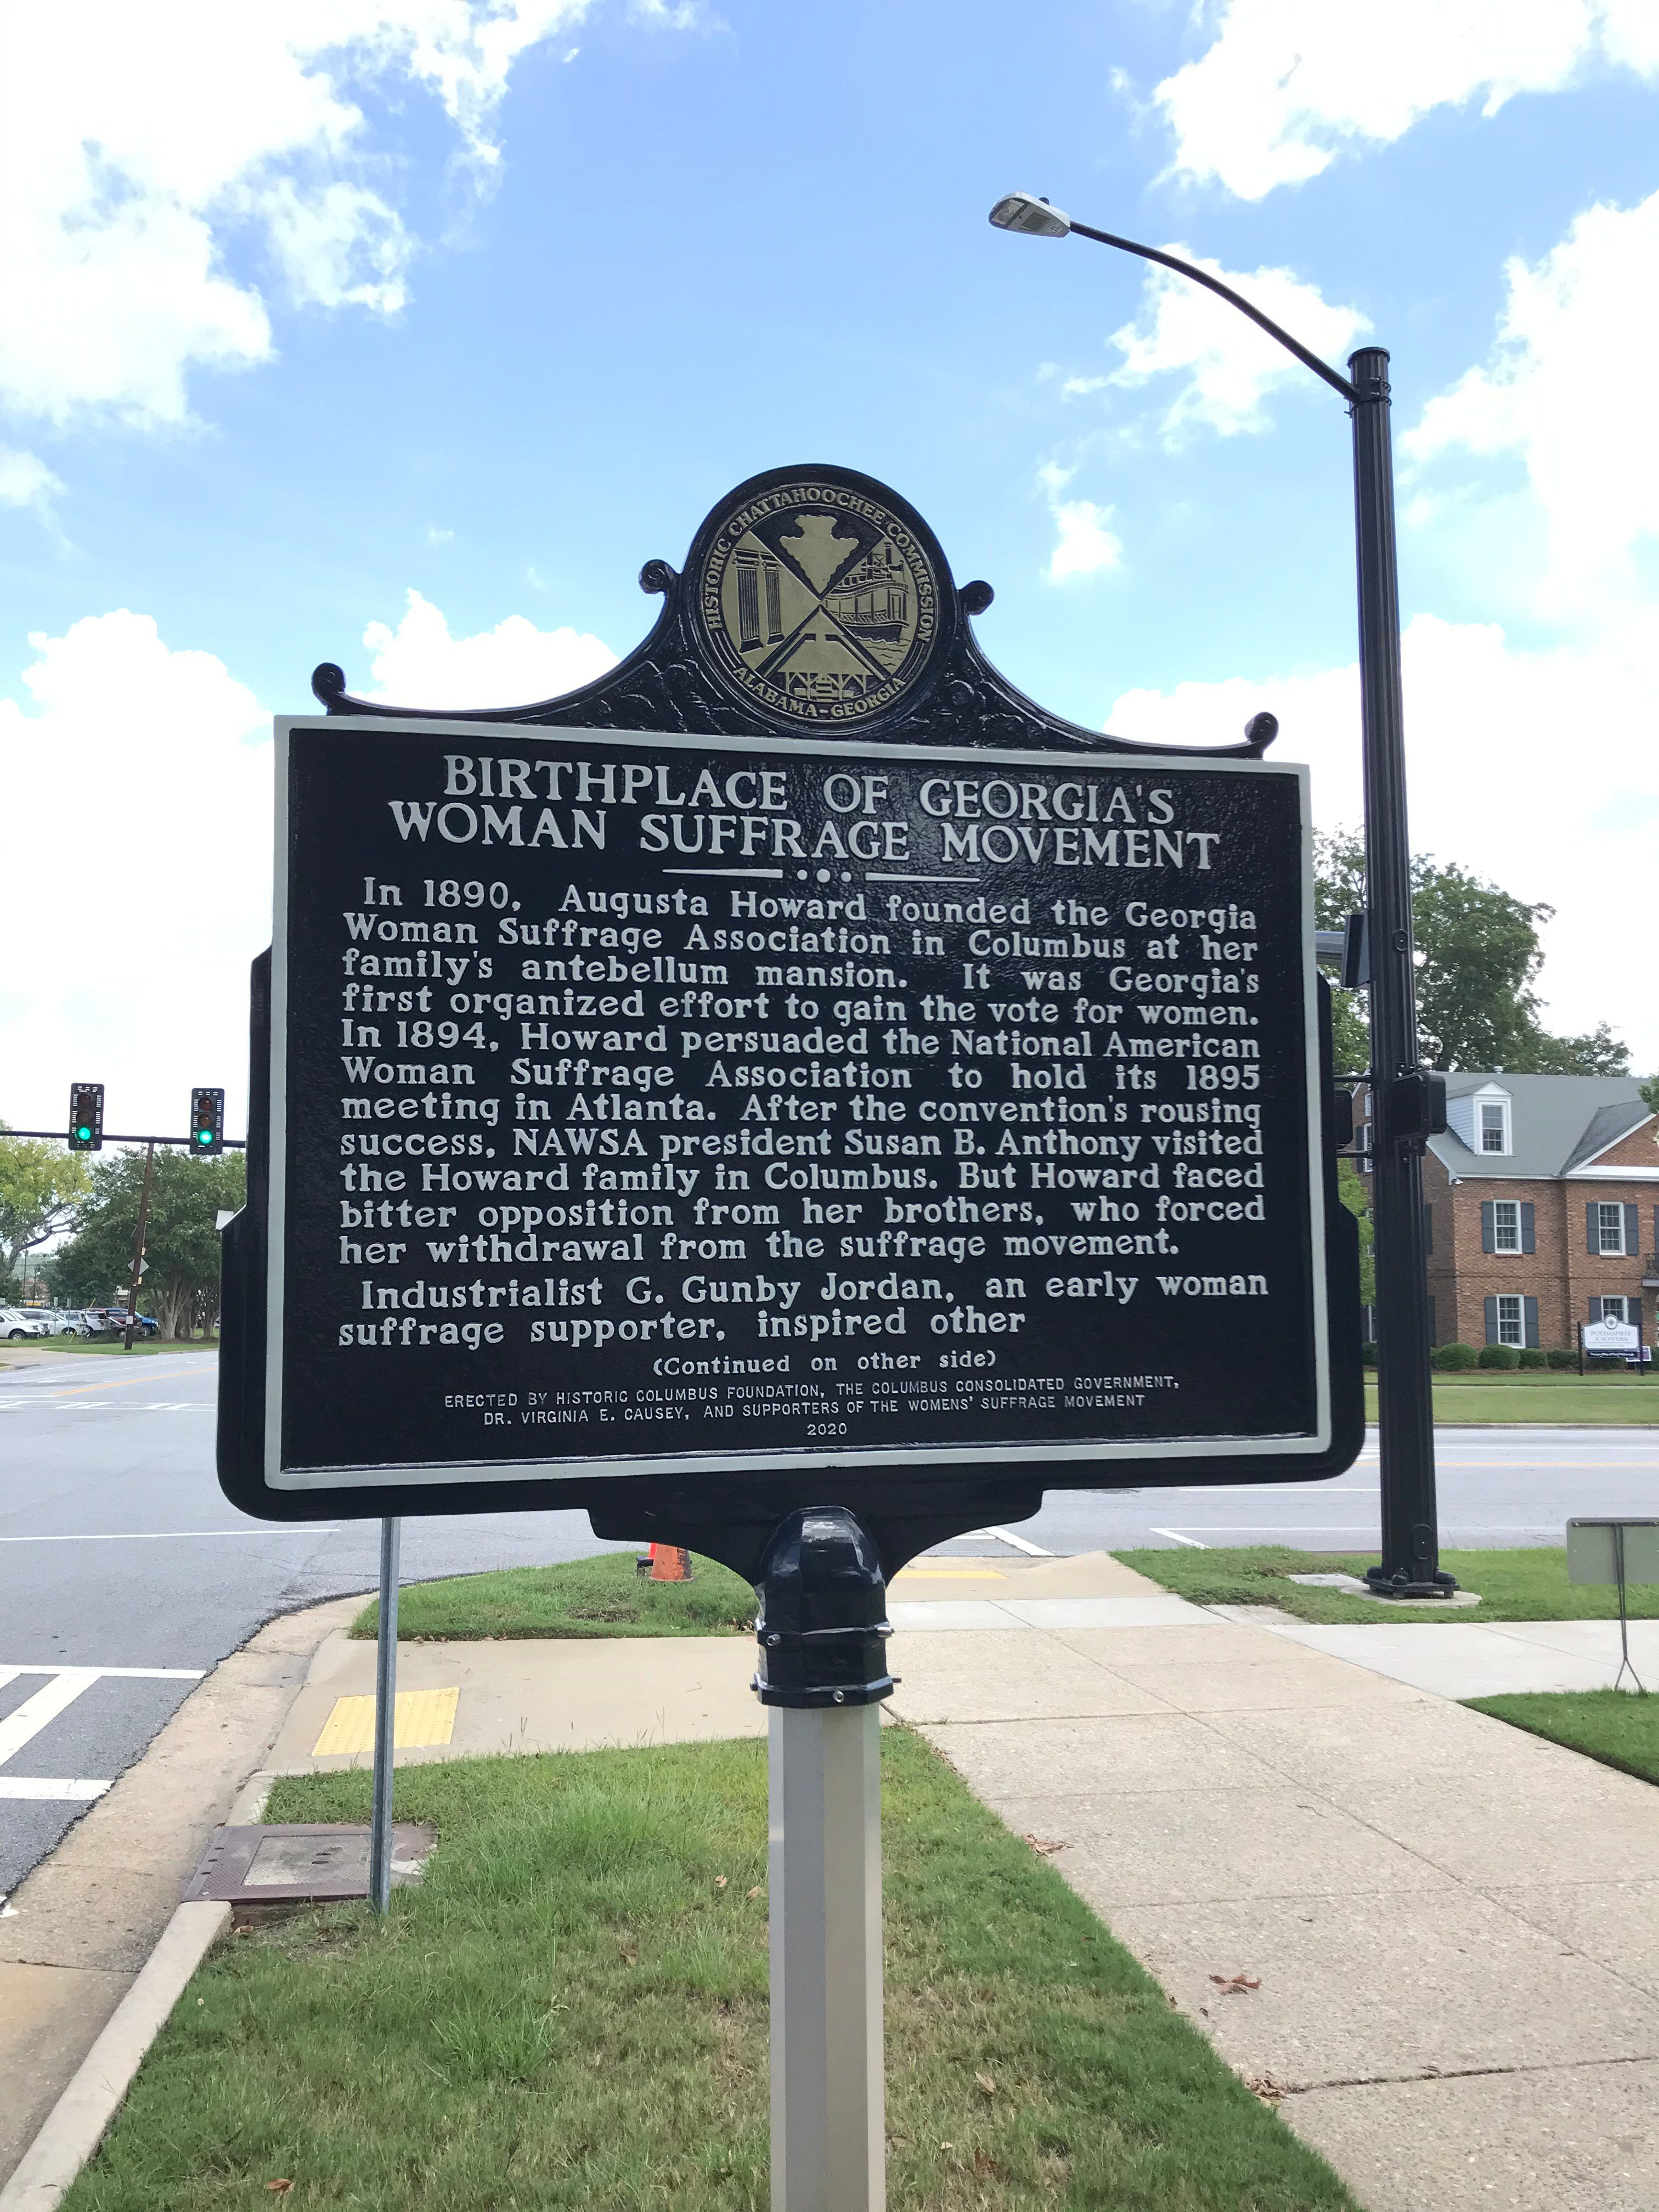 The Columbus Museum, Historic Columbus Partner to Recognize Columbus as Birthplace of Georgia's Women's Suffrage Movement